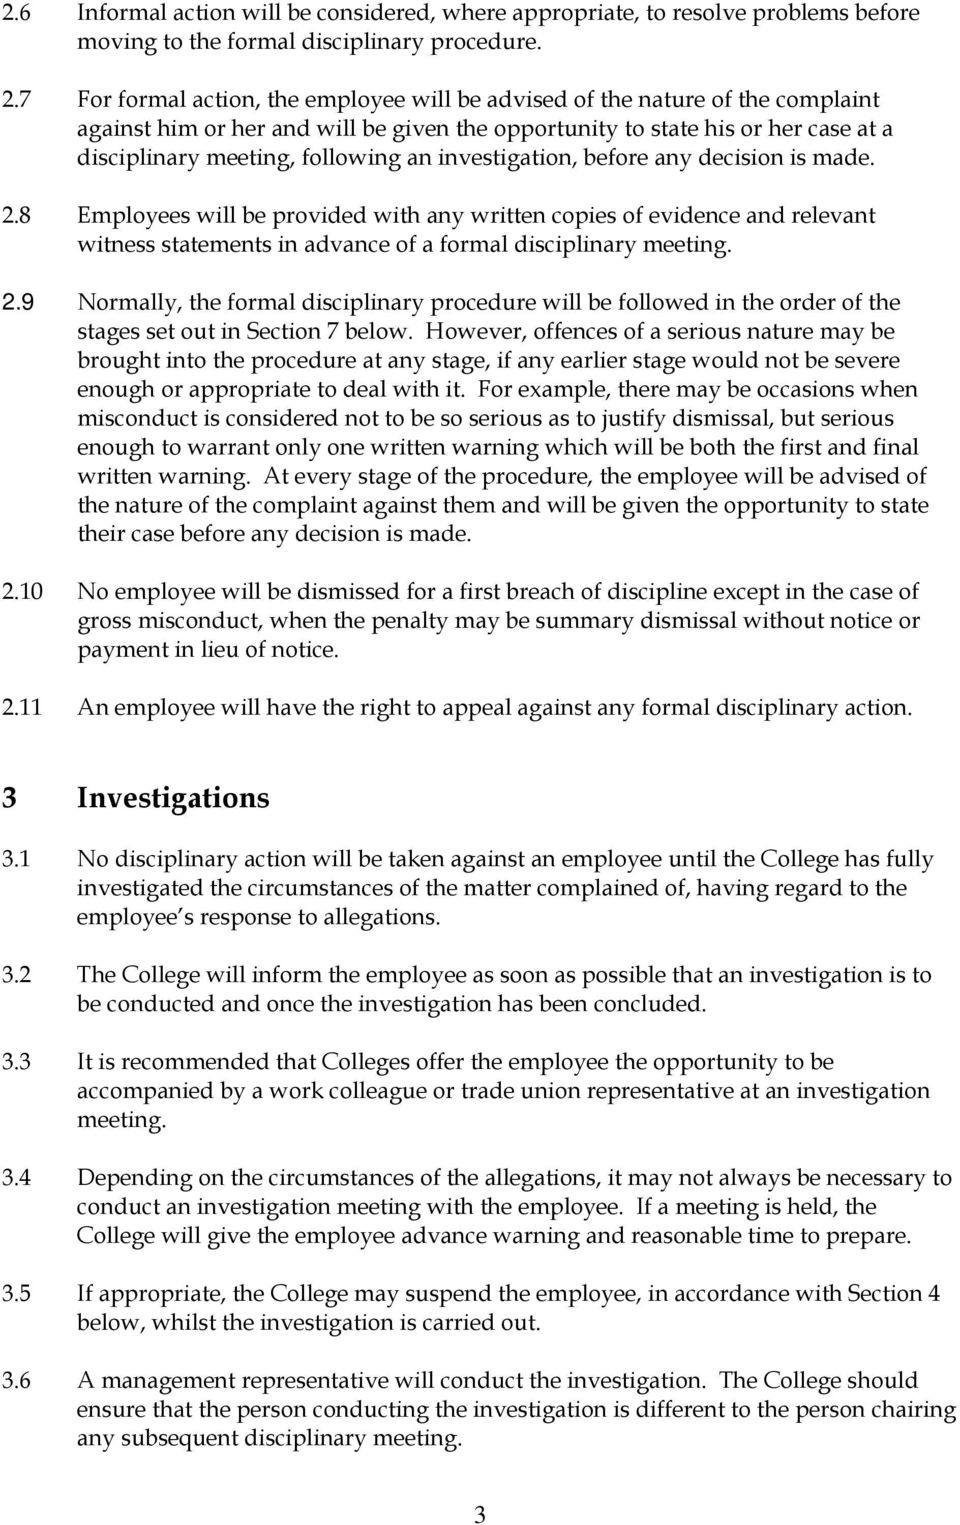 investigation, before any decision is made. 2.8 Employees will be provided with any written copies of evidence and relevant witness statements in advance of a formal disciplinary meeting. 2.9 Normally, the formal disciplinary procedure will be followed in the order of the stages set out in Section 7 below.